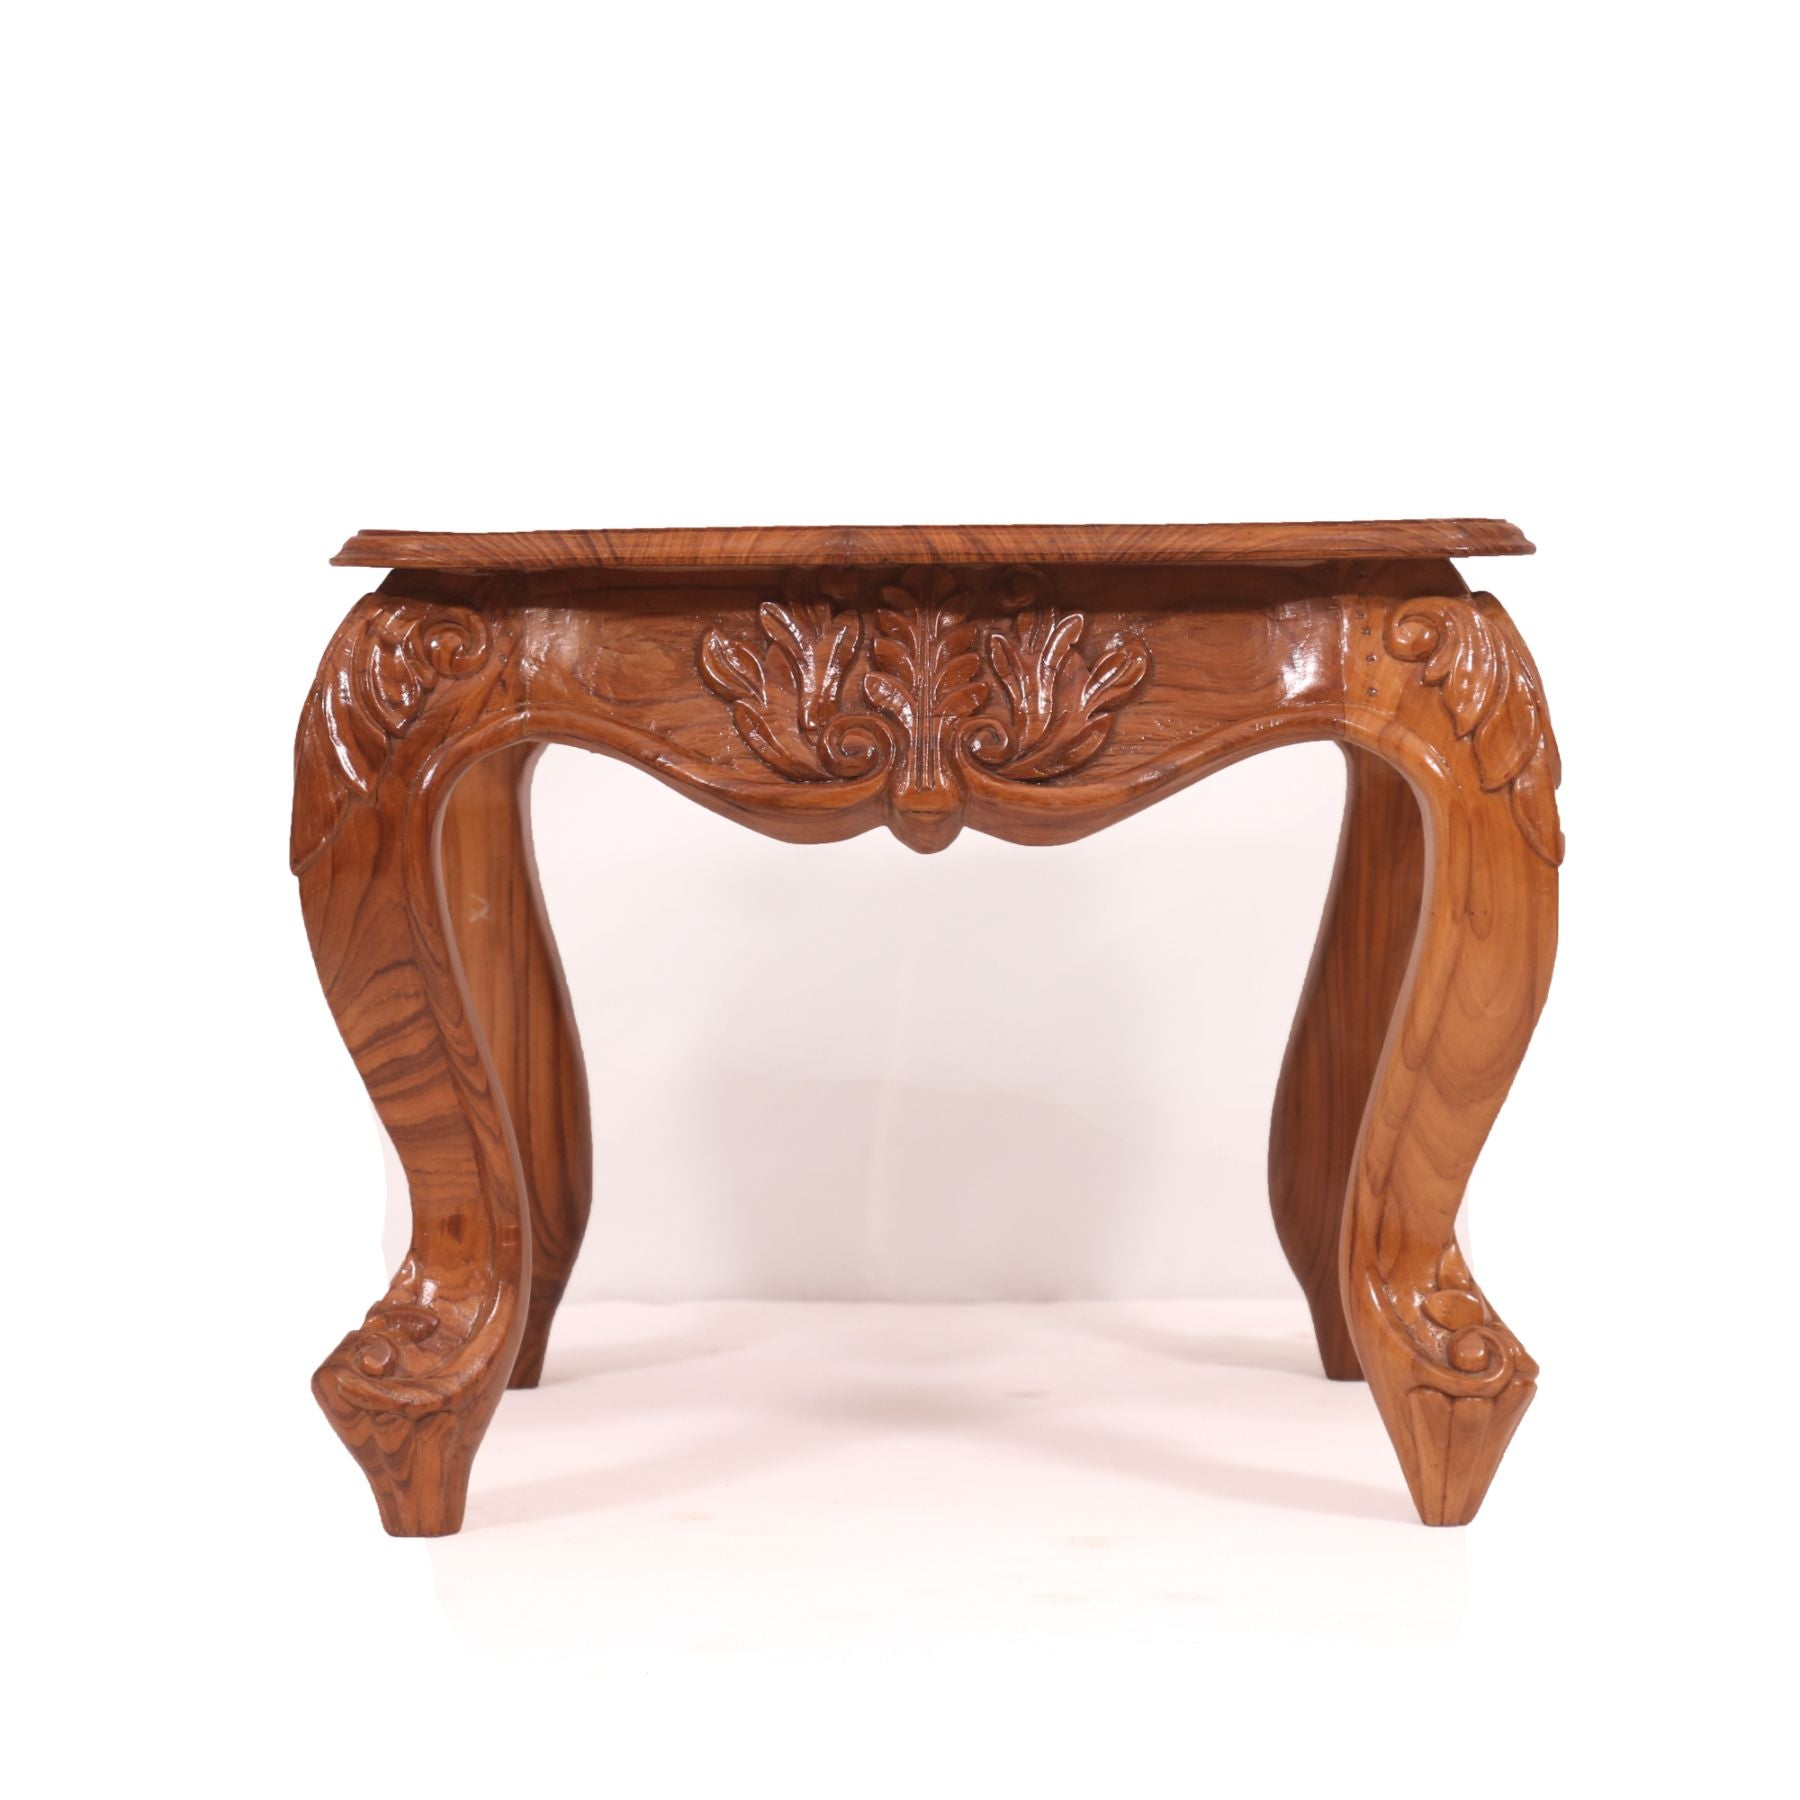 Carving Teak Wood Coffee Table